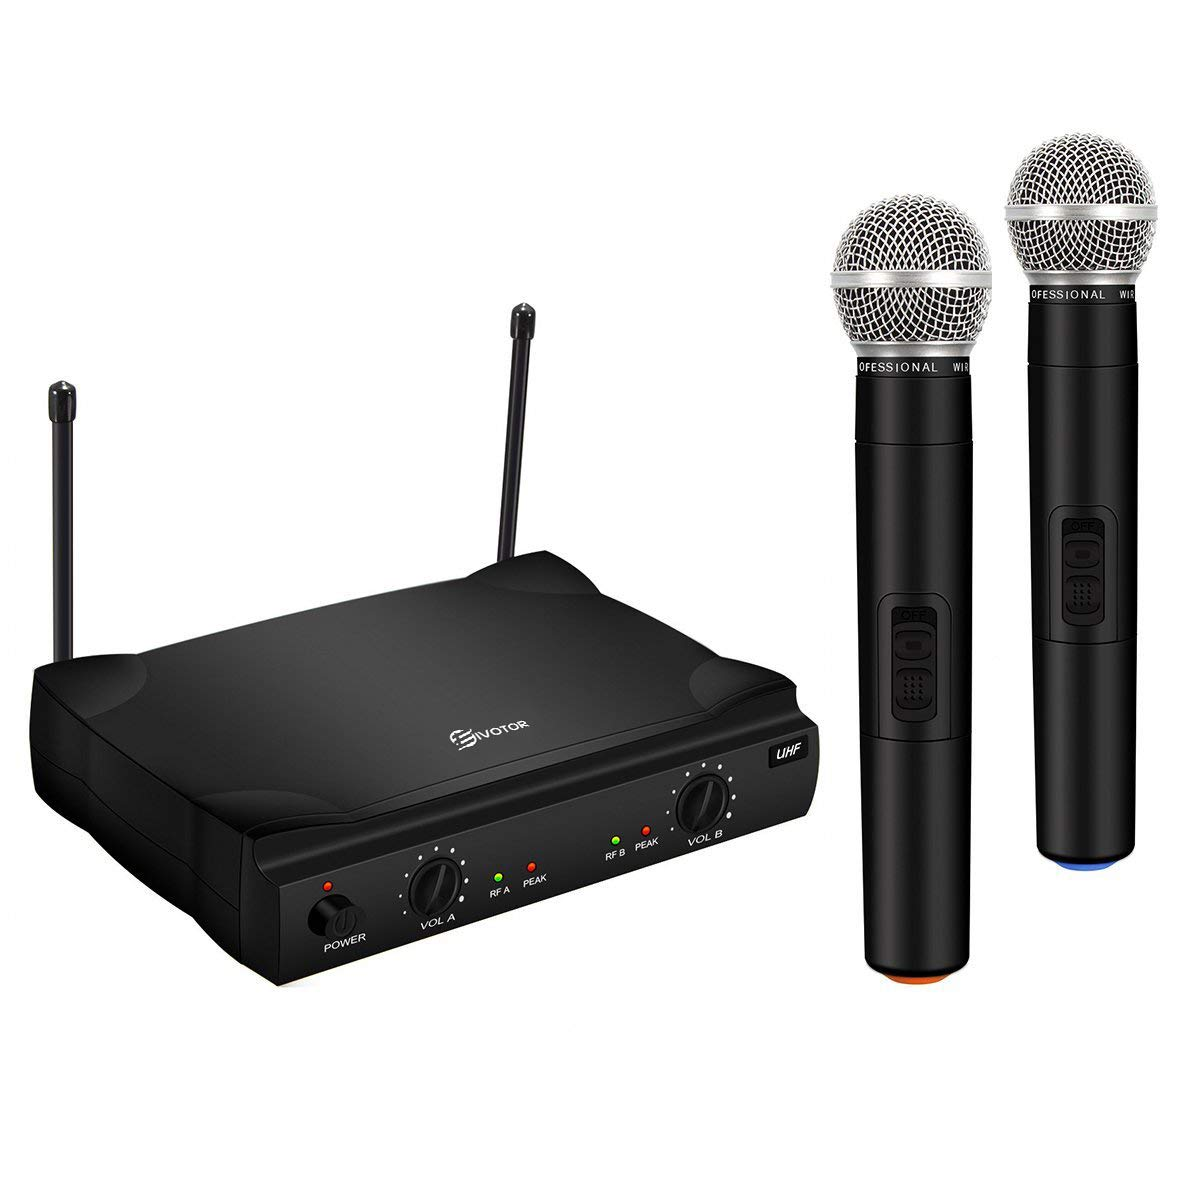 UHF Wireless Microphone System, EIVOTOR Dual Channel Handheld Wireless Microphone with Professional Karaoke Receiver and 2 Handheld Dynamic Mics Set, for Home Party, KTV, Meeting, Wedding, Church by EIVOTOR